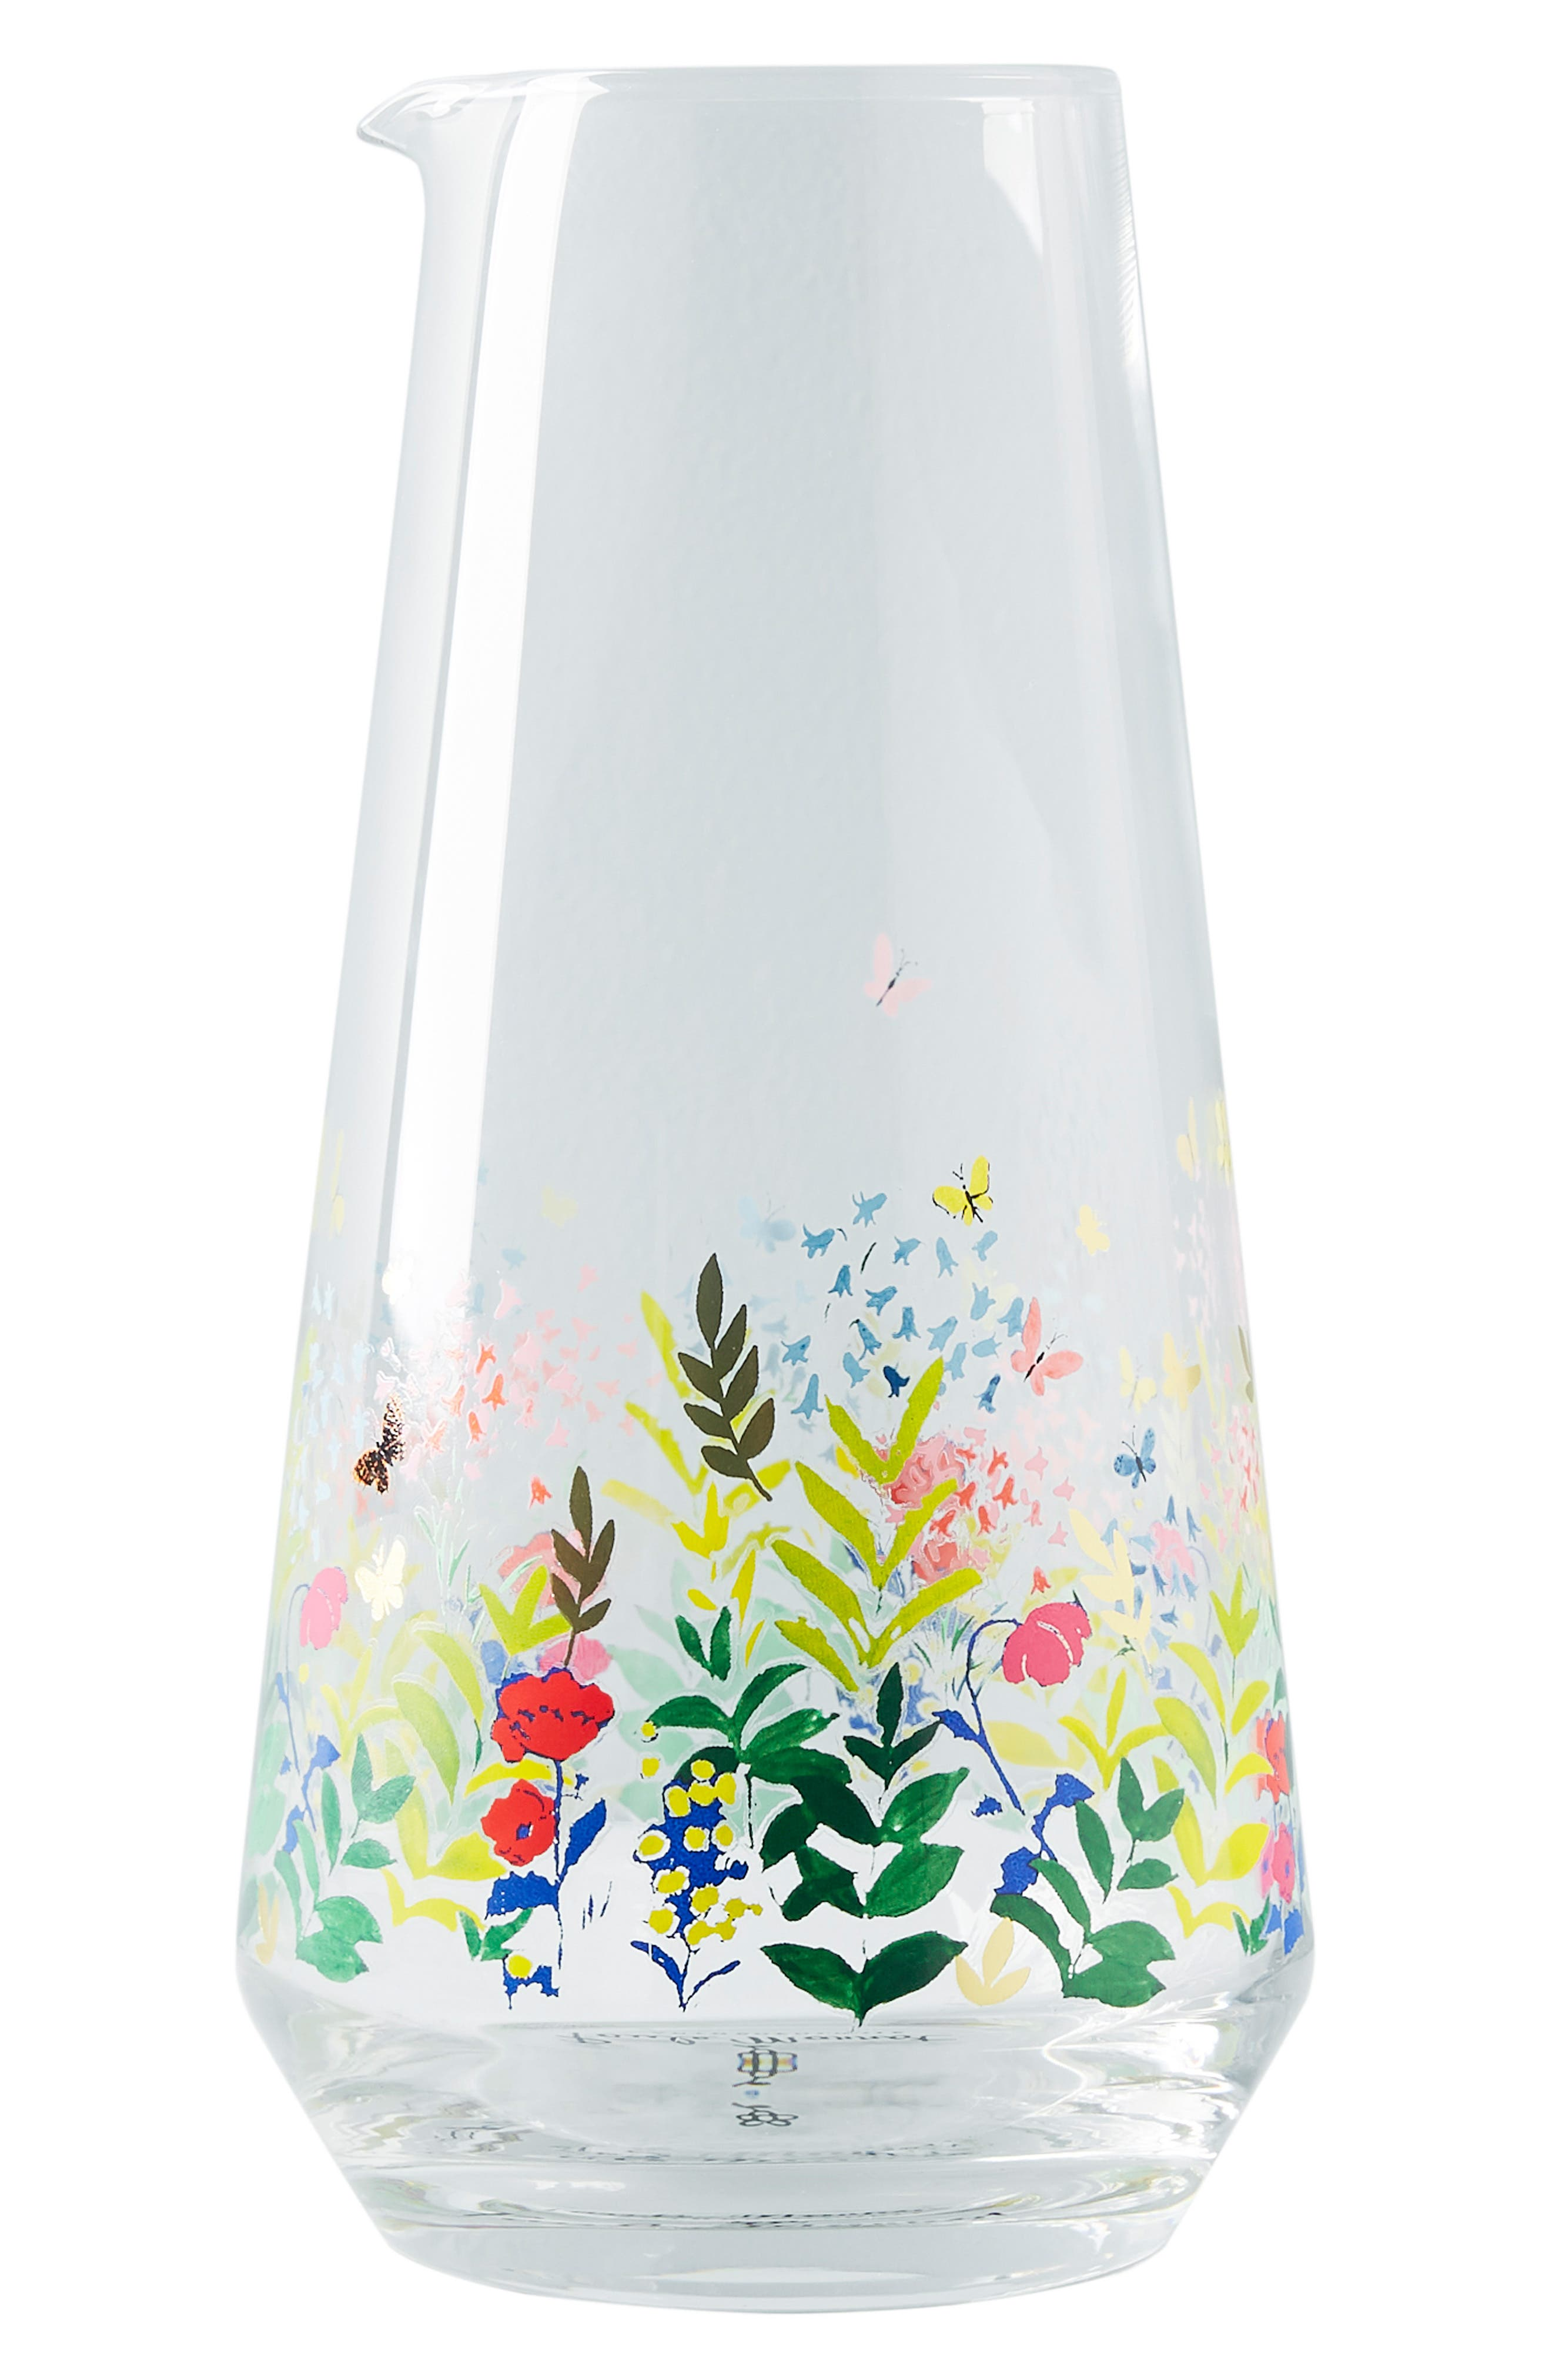 ANTHROPOLOGIE,                             Paule Marrot Garden Carafe,                             Alternate thumbnail 4, color,                             CLEAR